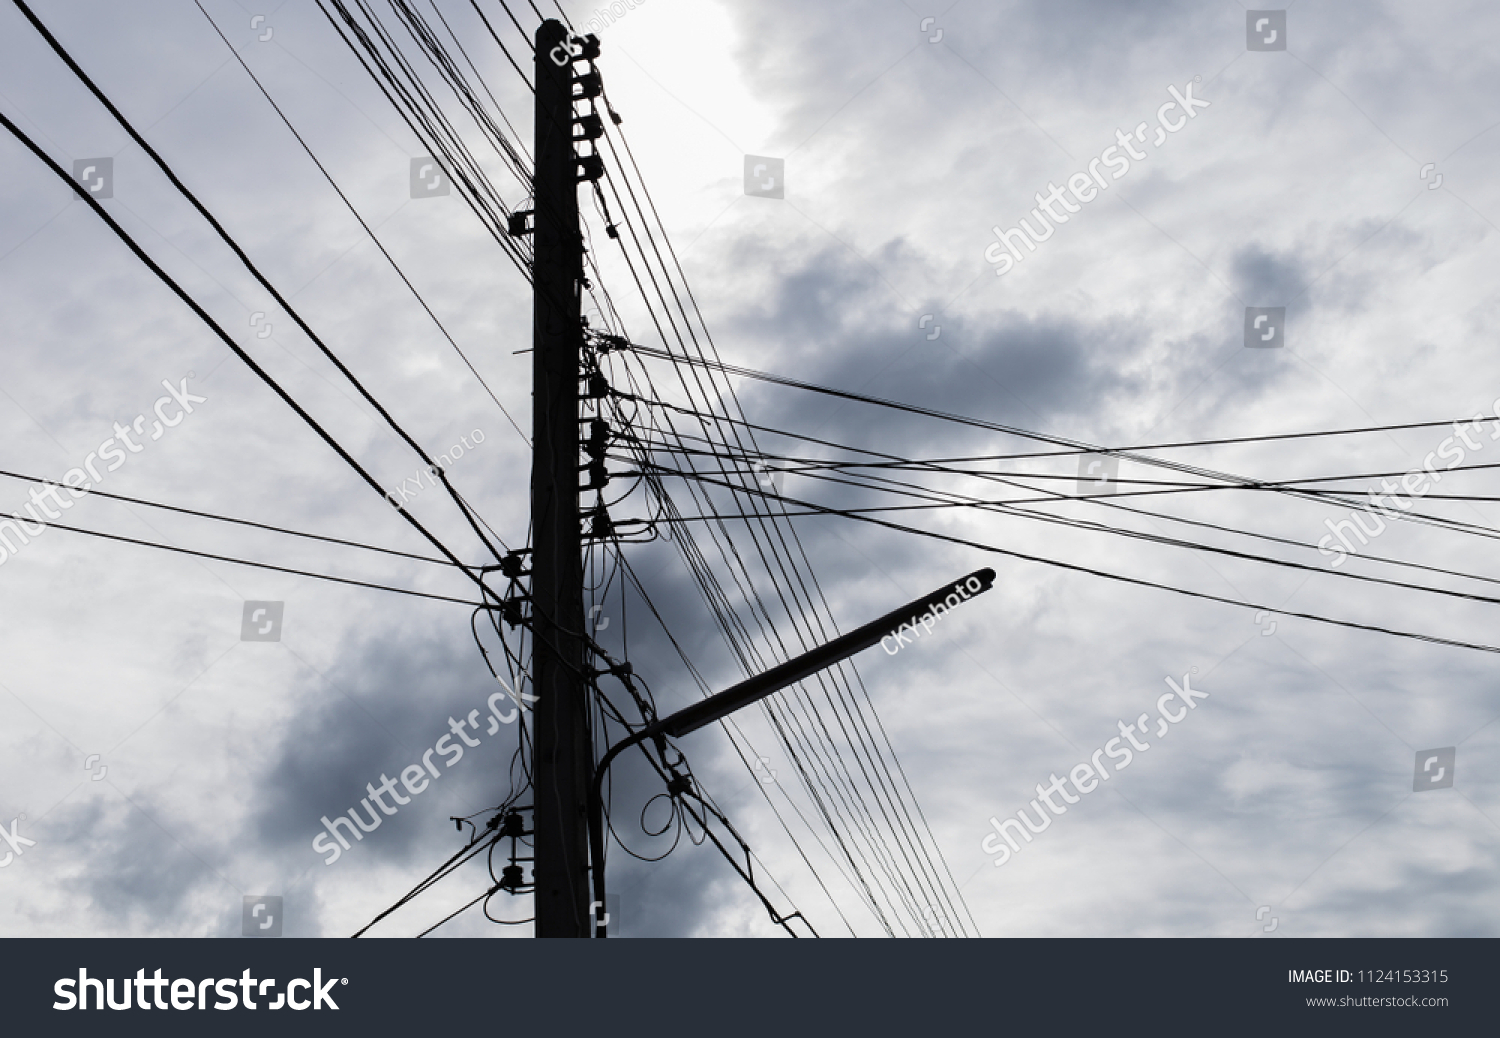 Excellent Old Vintage Messy Concrete Electric Pole Stock Photo Edit Now Wiring Cloud Nuvitbieswglorg